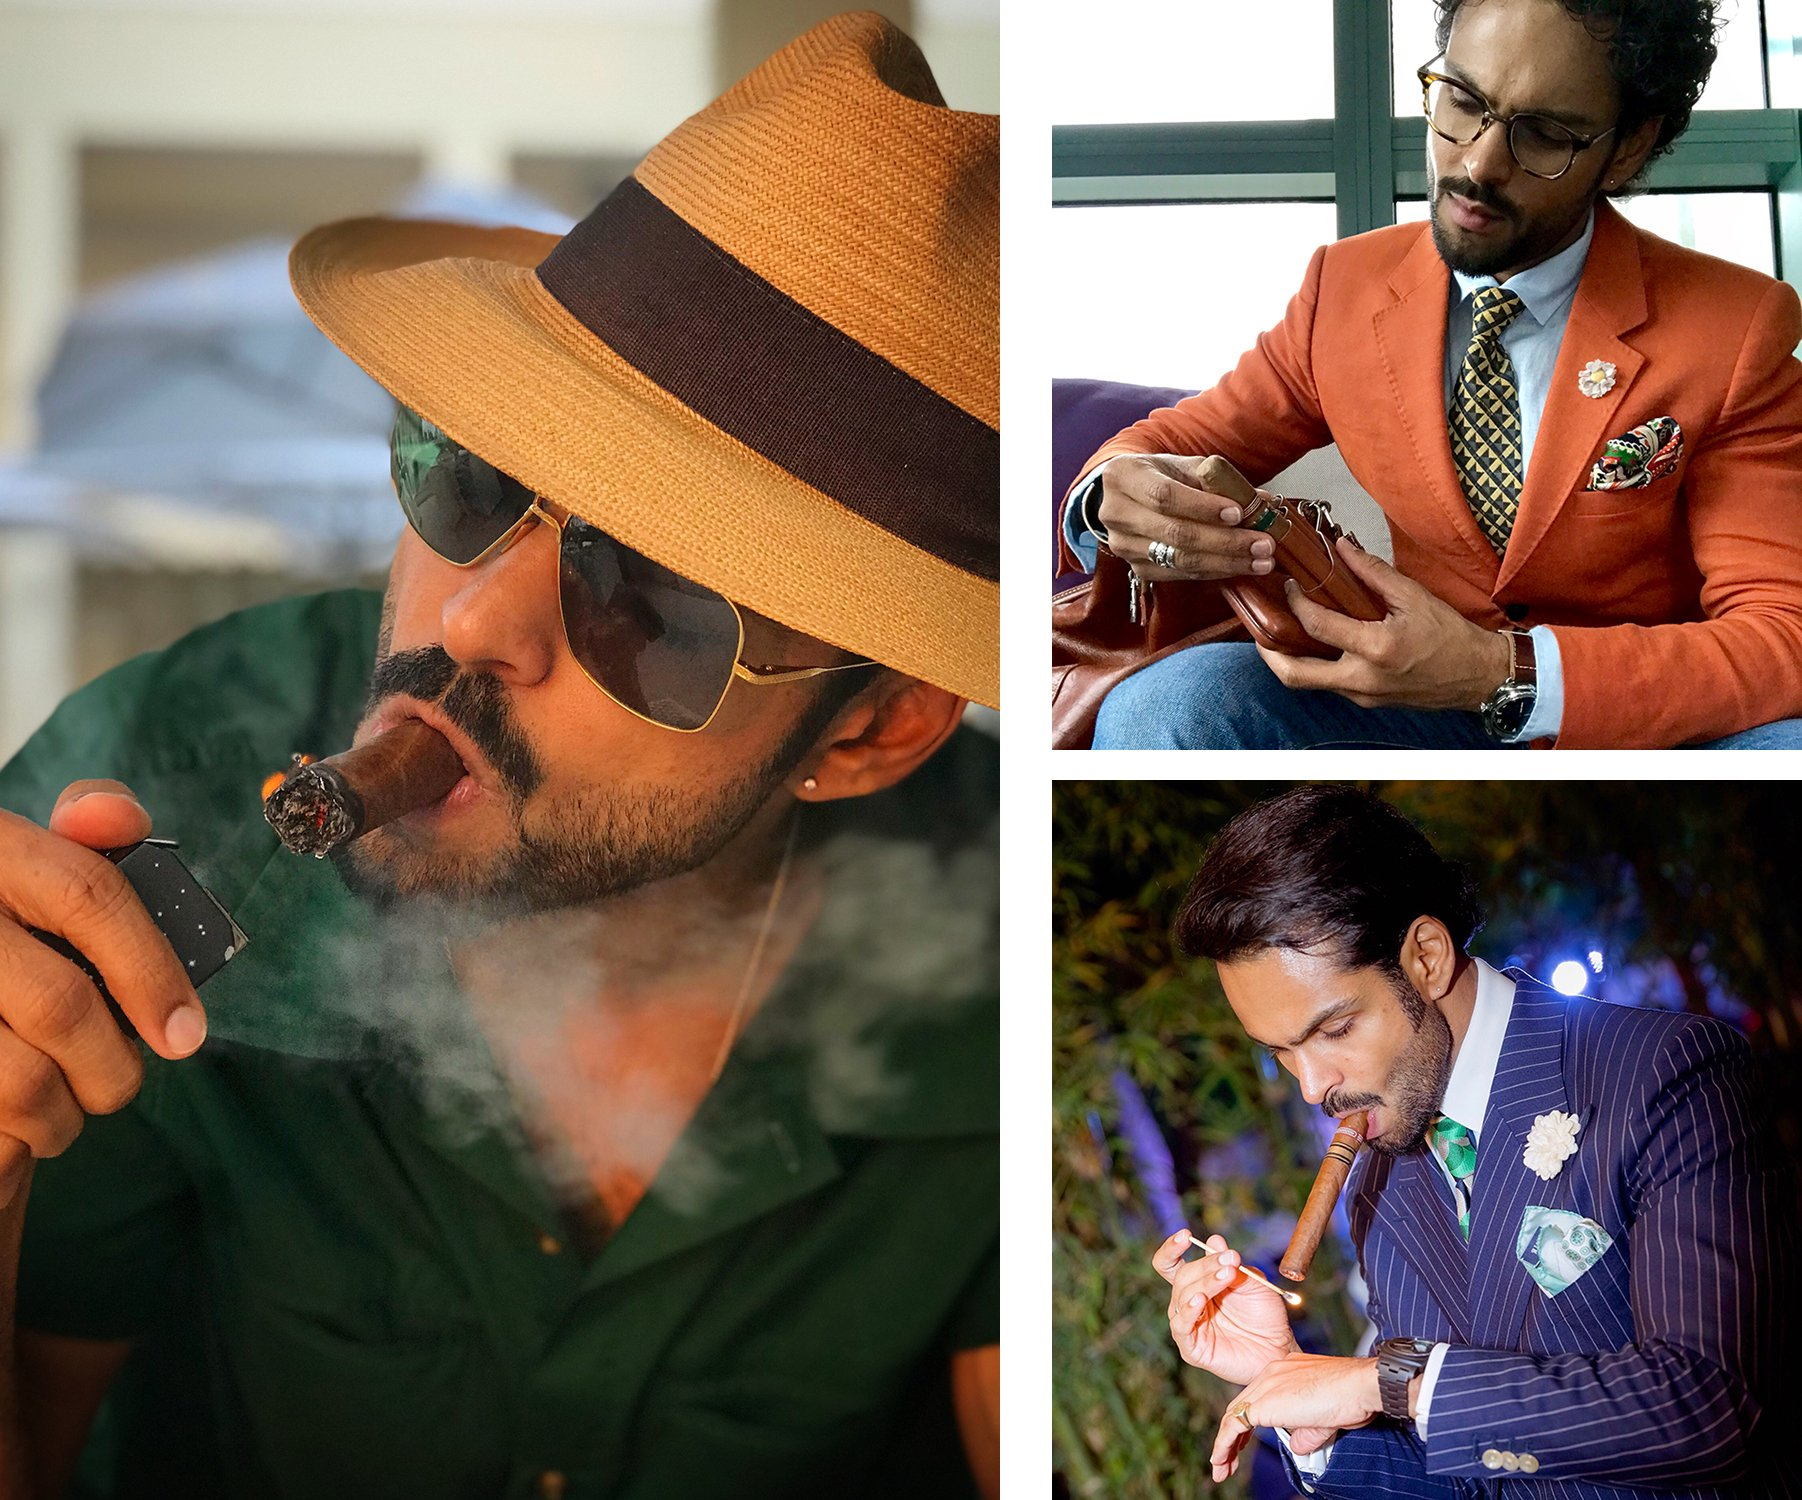 jasim_ahmed_talks_cuban_cigars_lifestyle_and_fashion_egm_cigars_2048x2048.jpg